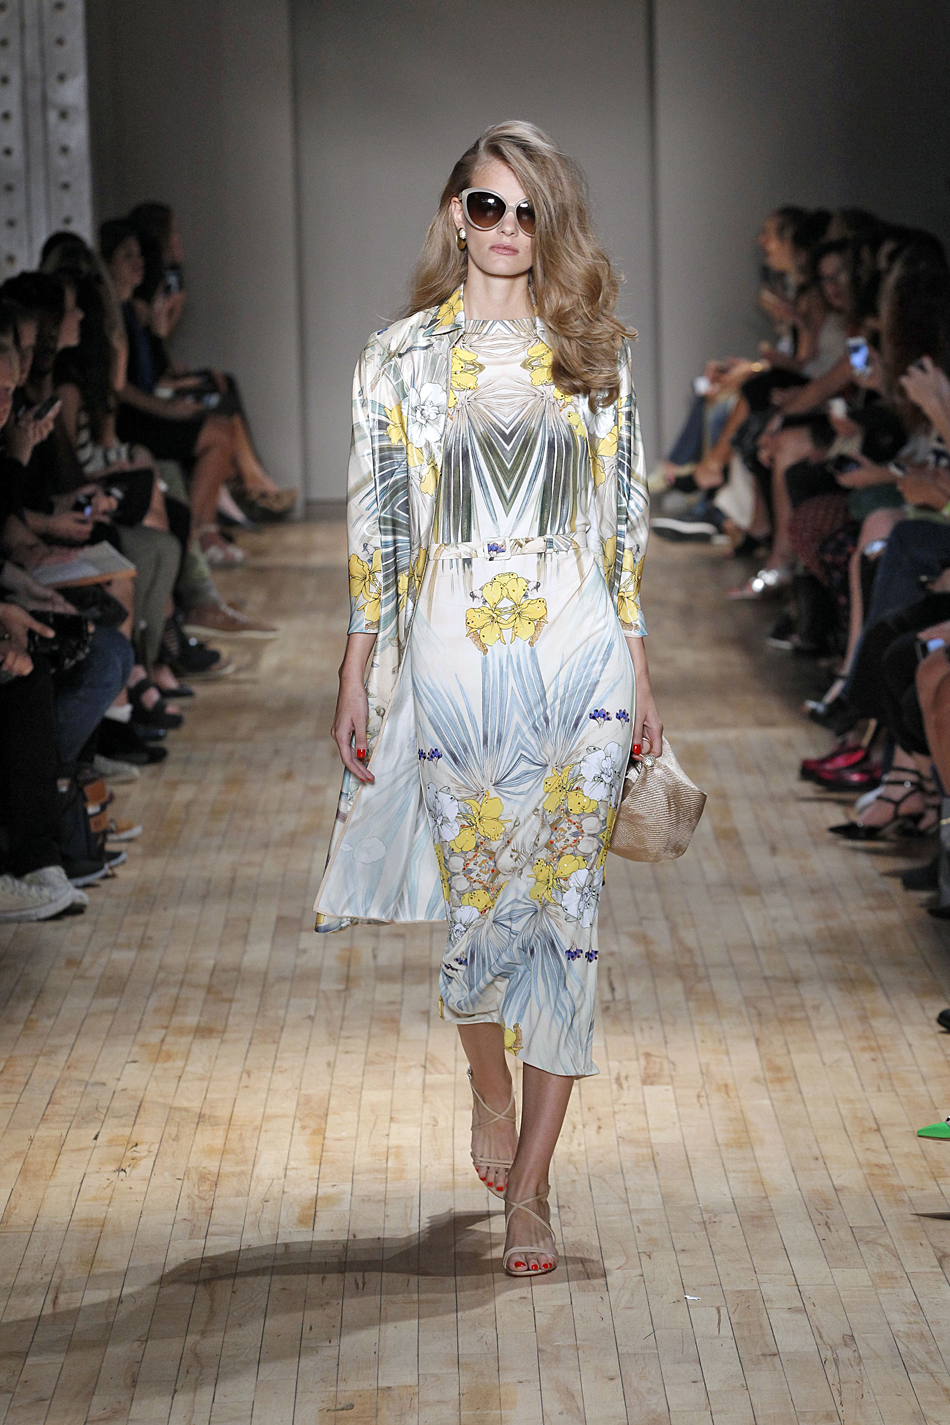 Jenny Packham New York Fashion Week  Spring Summer 15 New York September 2014